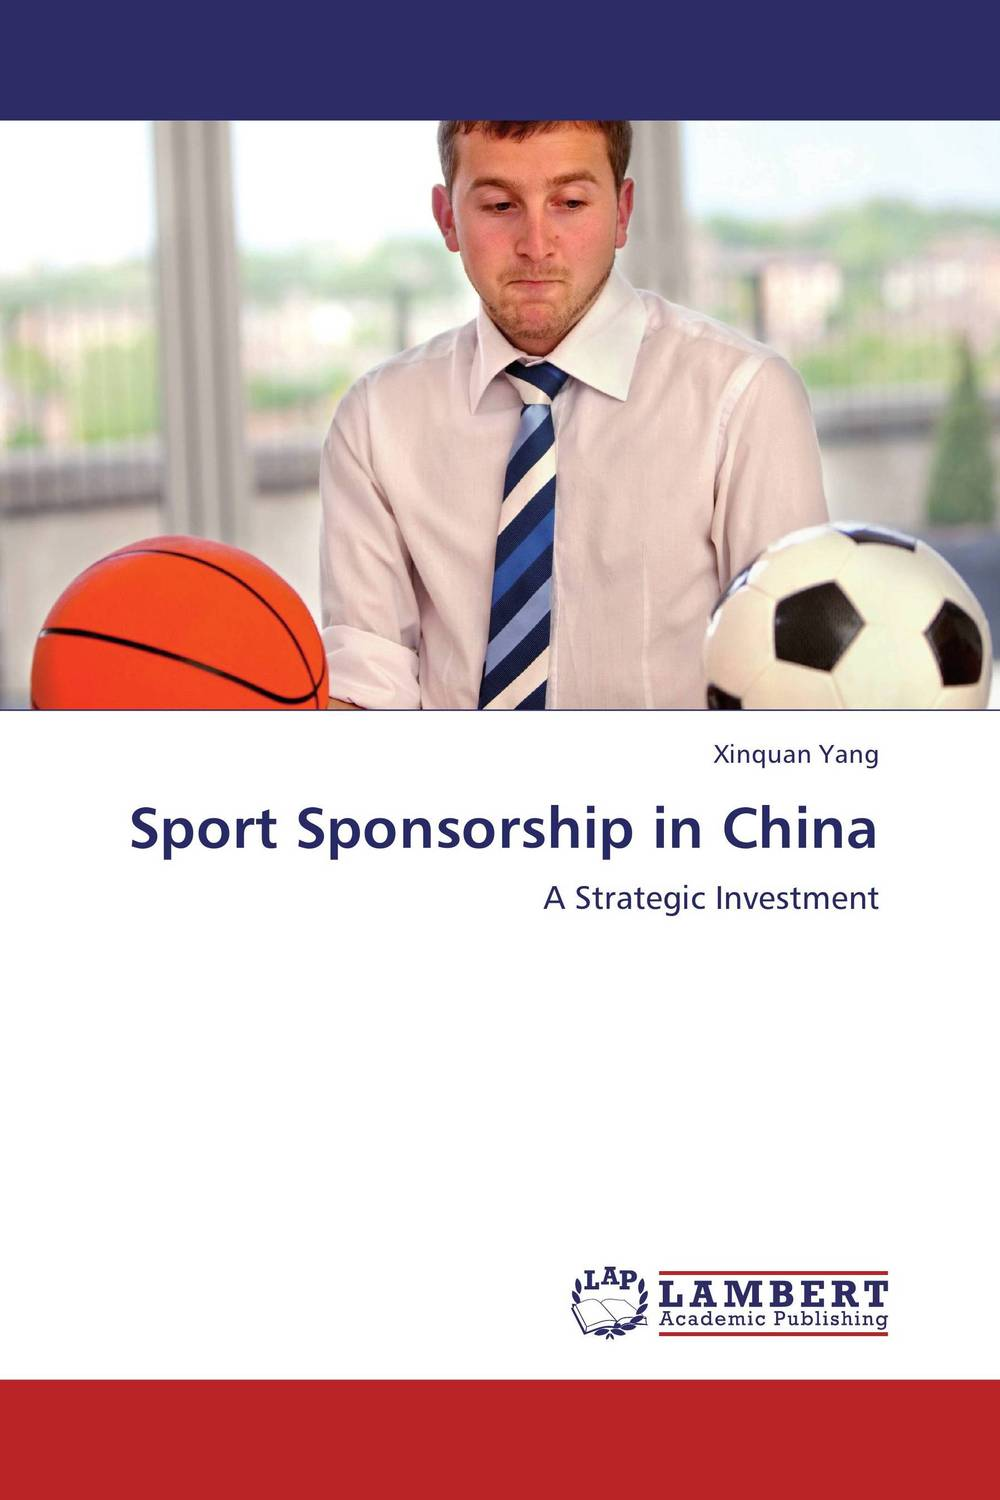 Sport Sponsorship in China made possible by succeeding with sponsorship